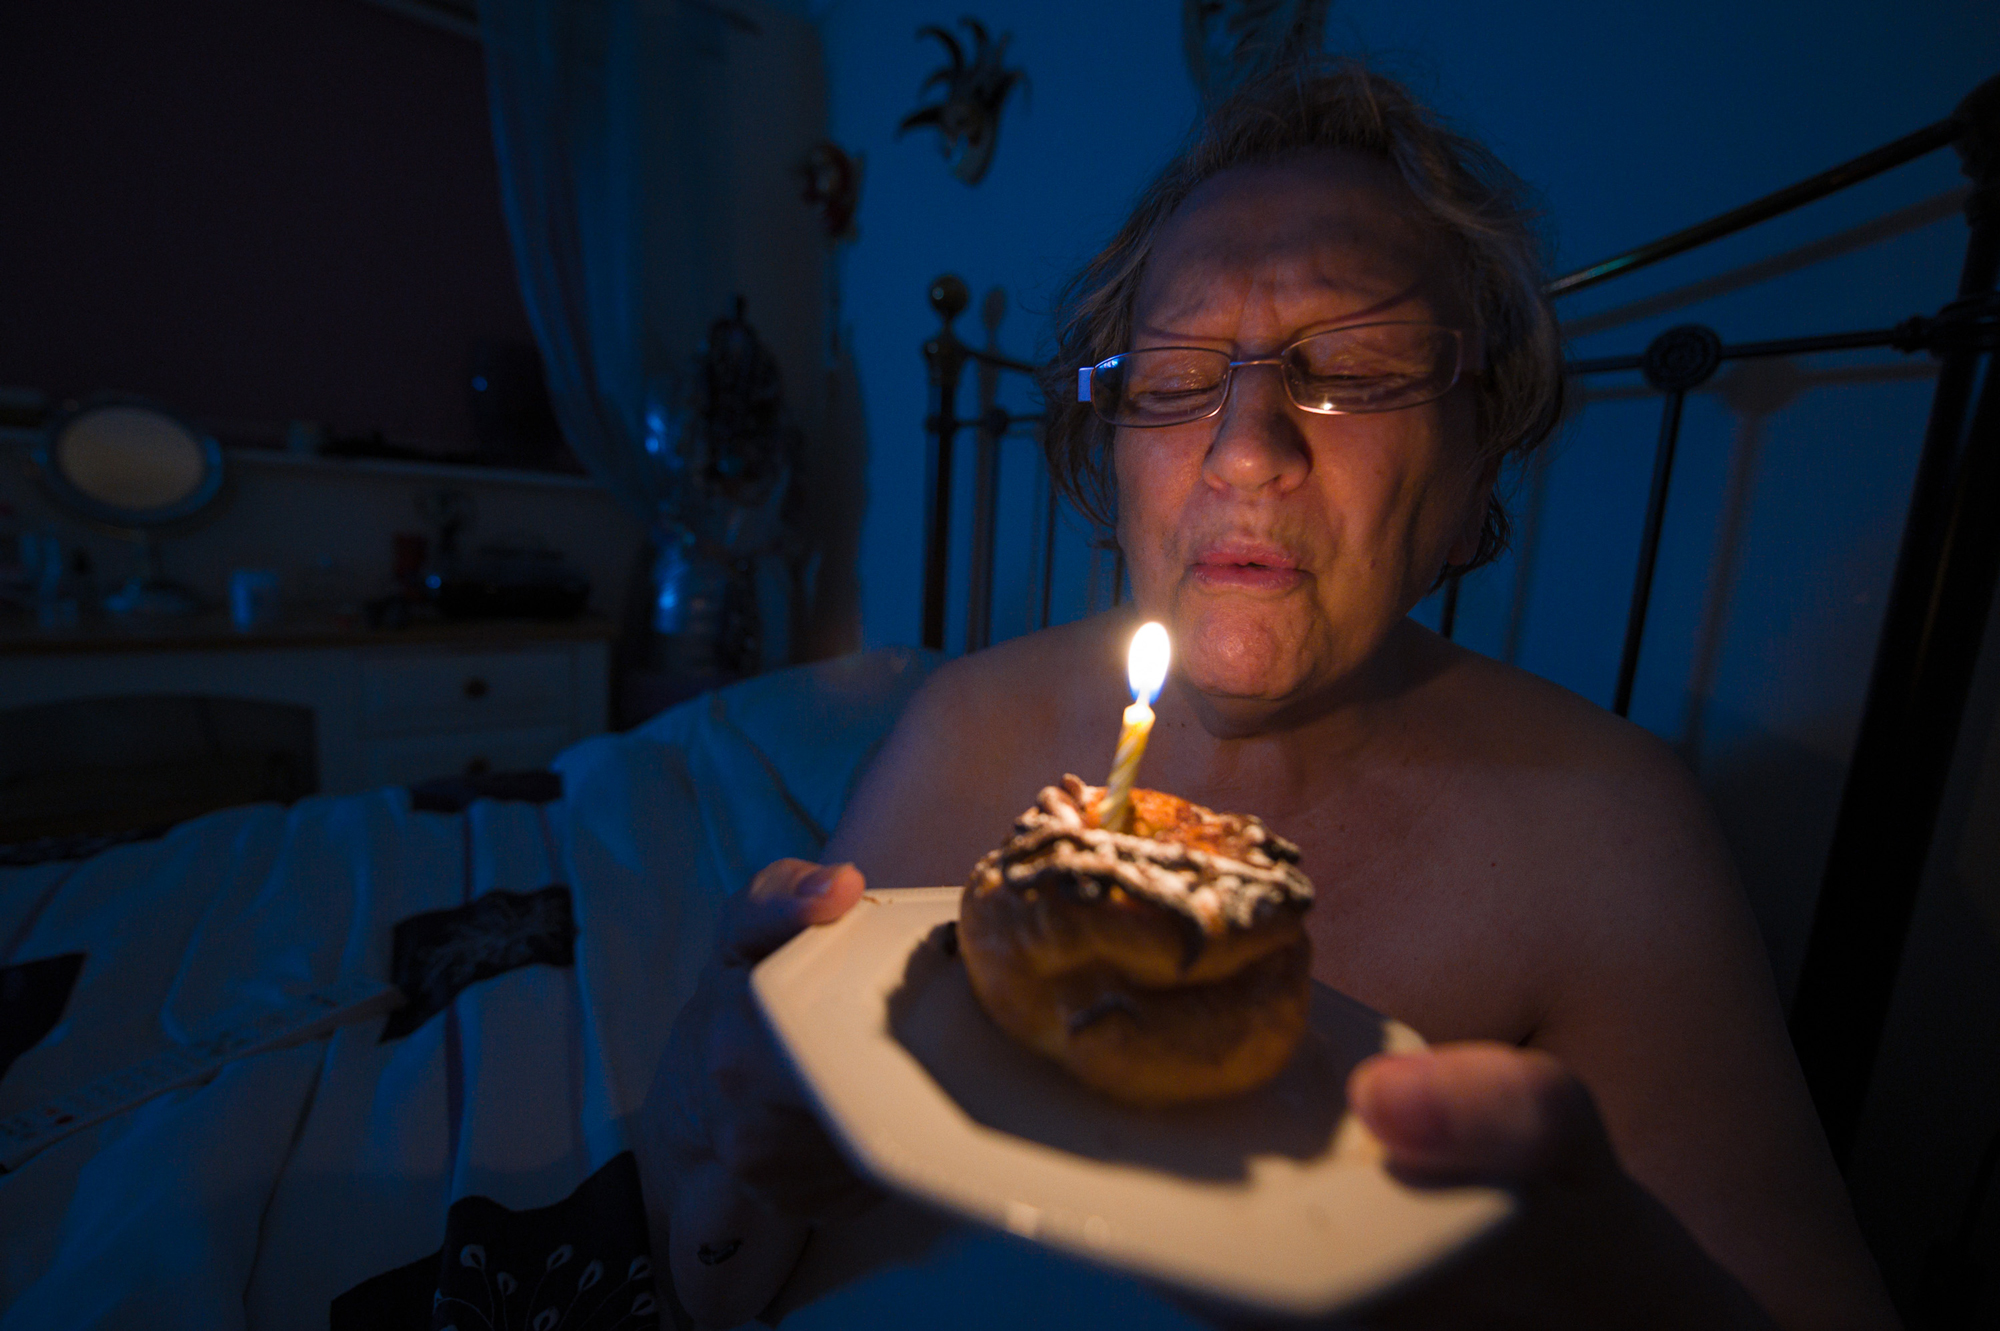 An elderly woman sits on her bed in a dark room, blowing out a single candle on a plated donut.